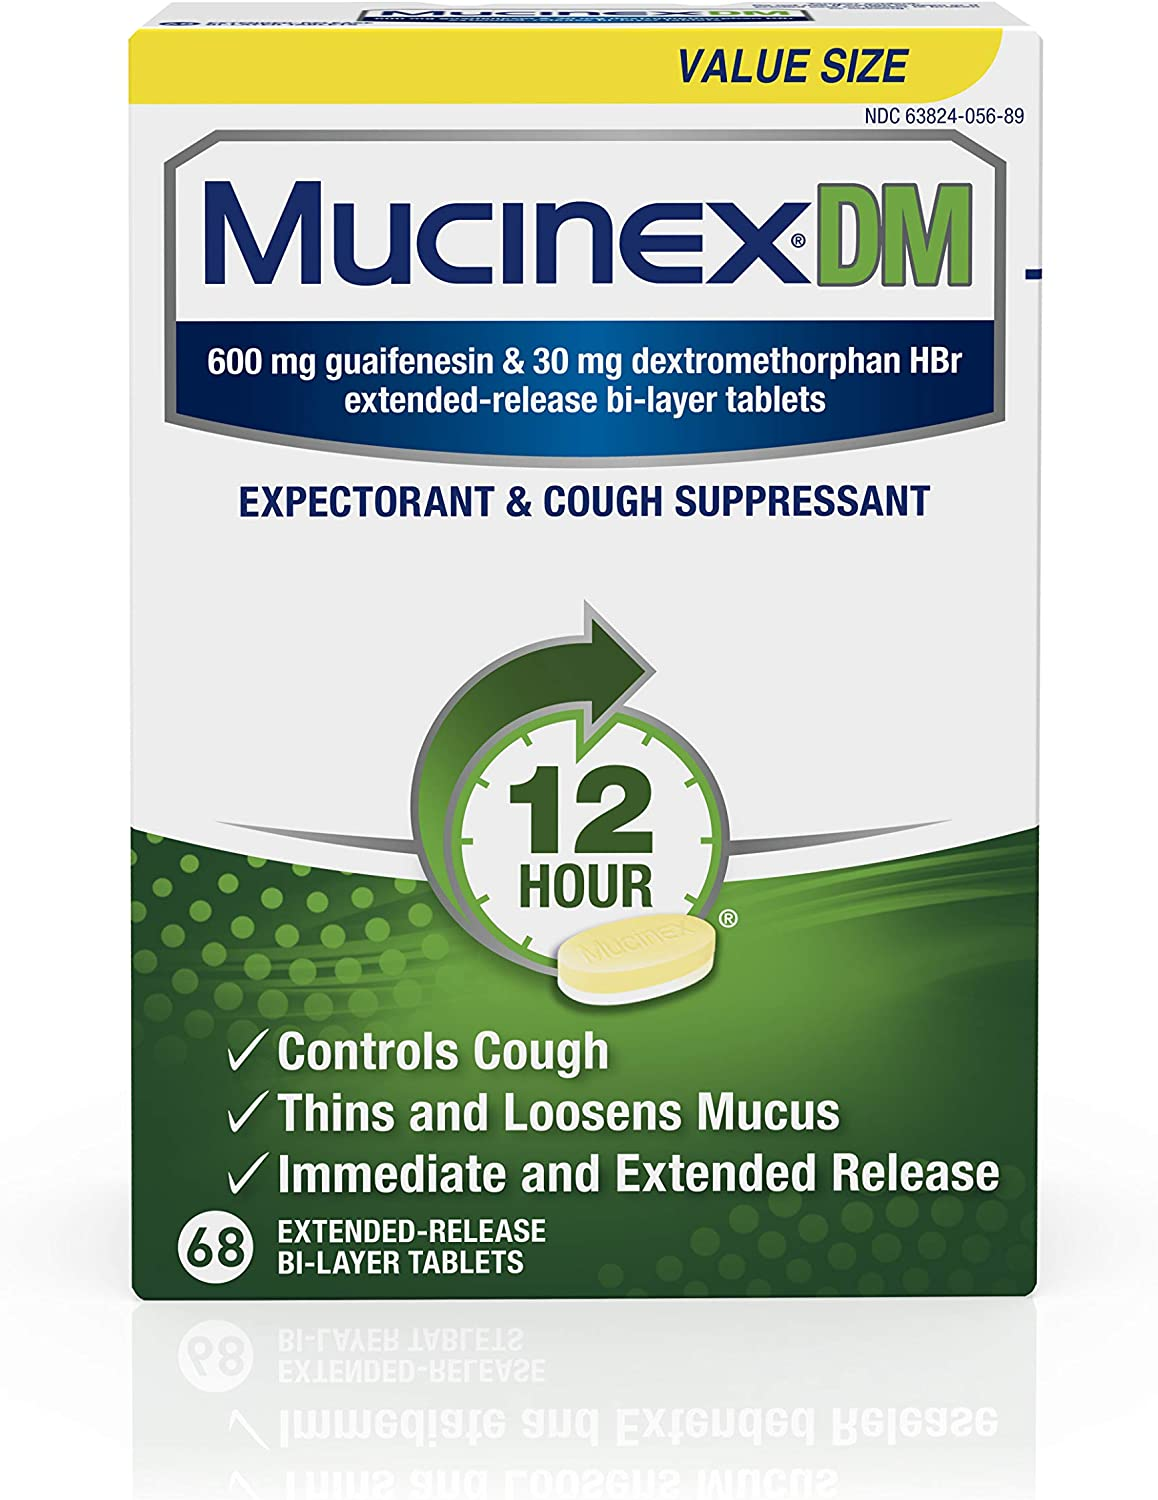 Mucinex DM Expectorant and Cough Suppressant 12-Hour Relief Tablets, 68ct, Contains 600 mg Guaifenesin & 30 mg Dextromethorphan HBr, Controls Cough & Thins & Loosens Mucus